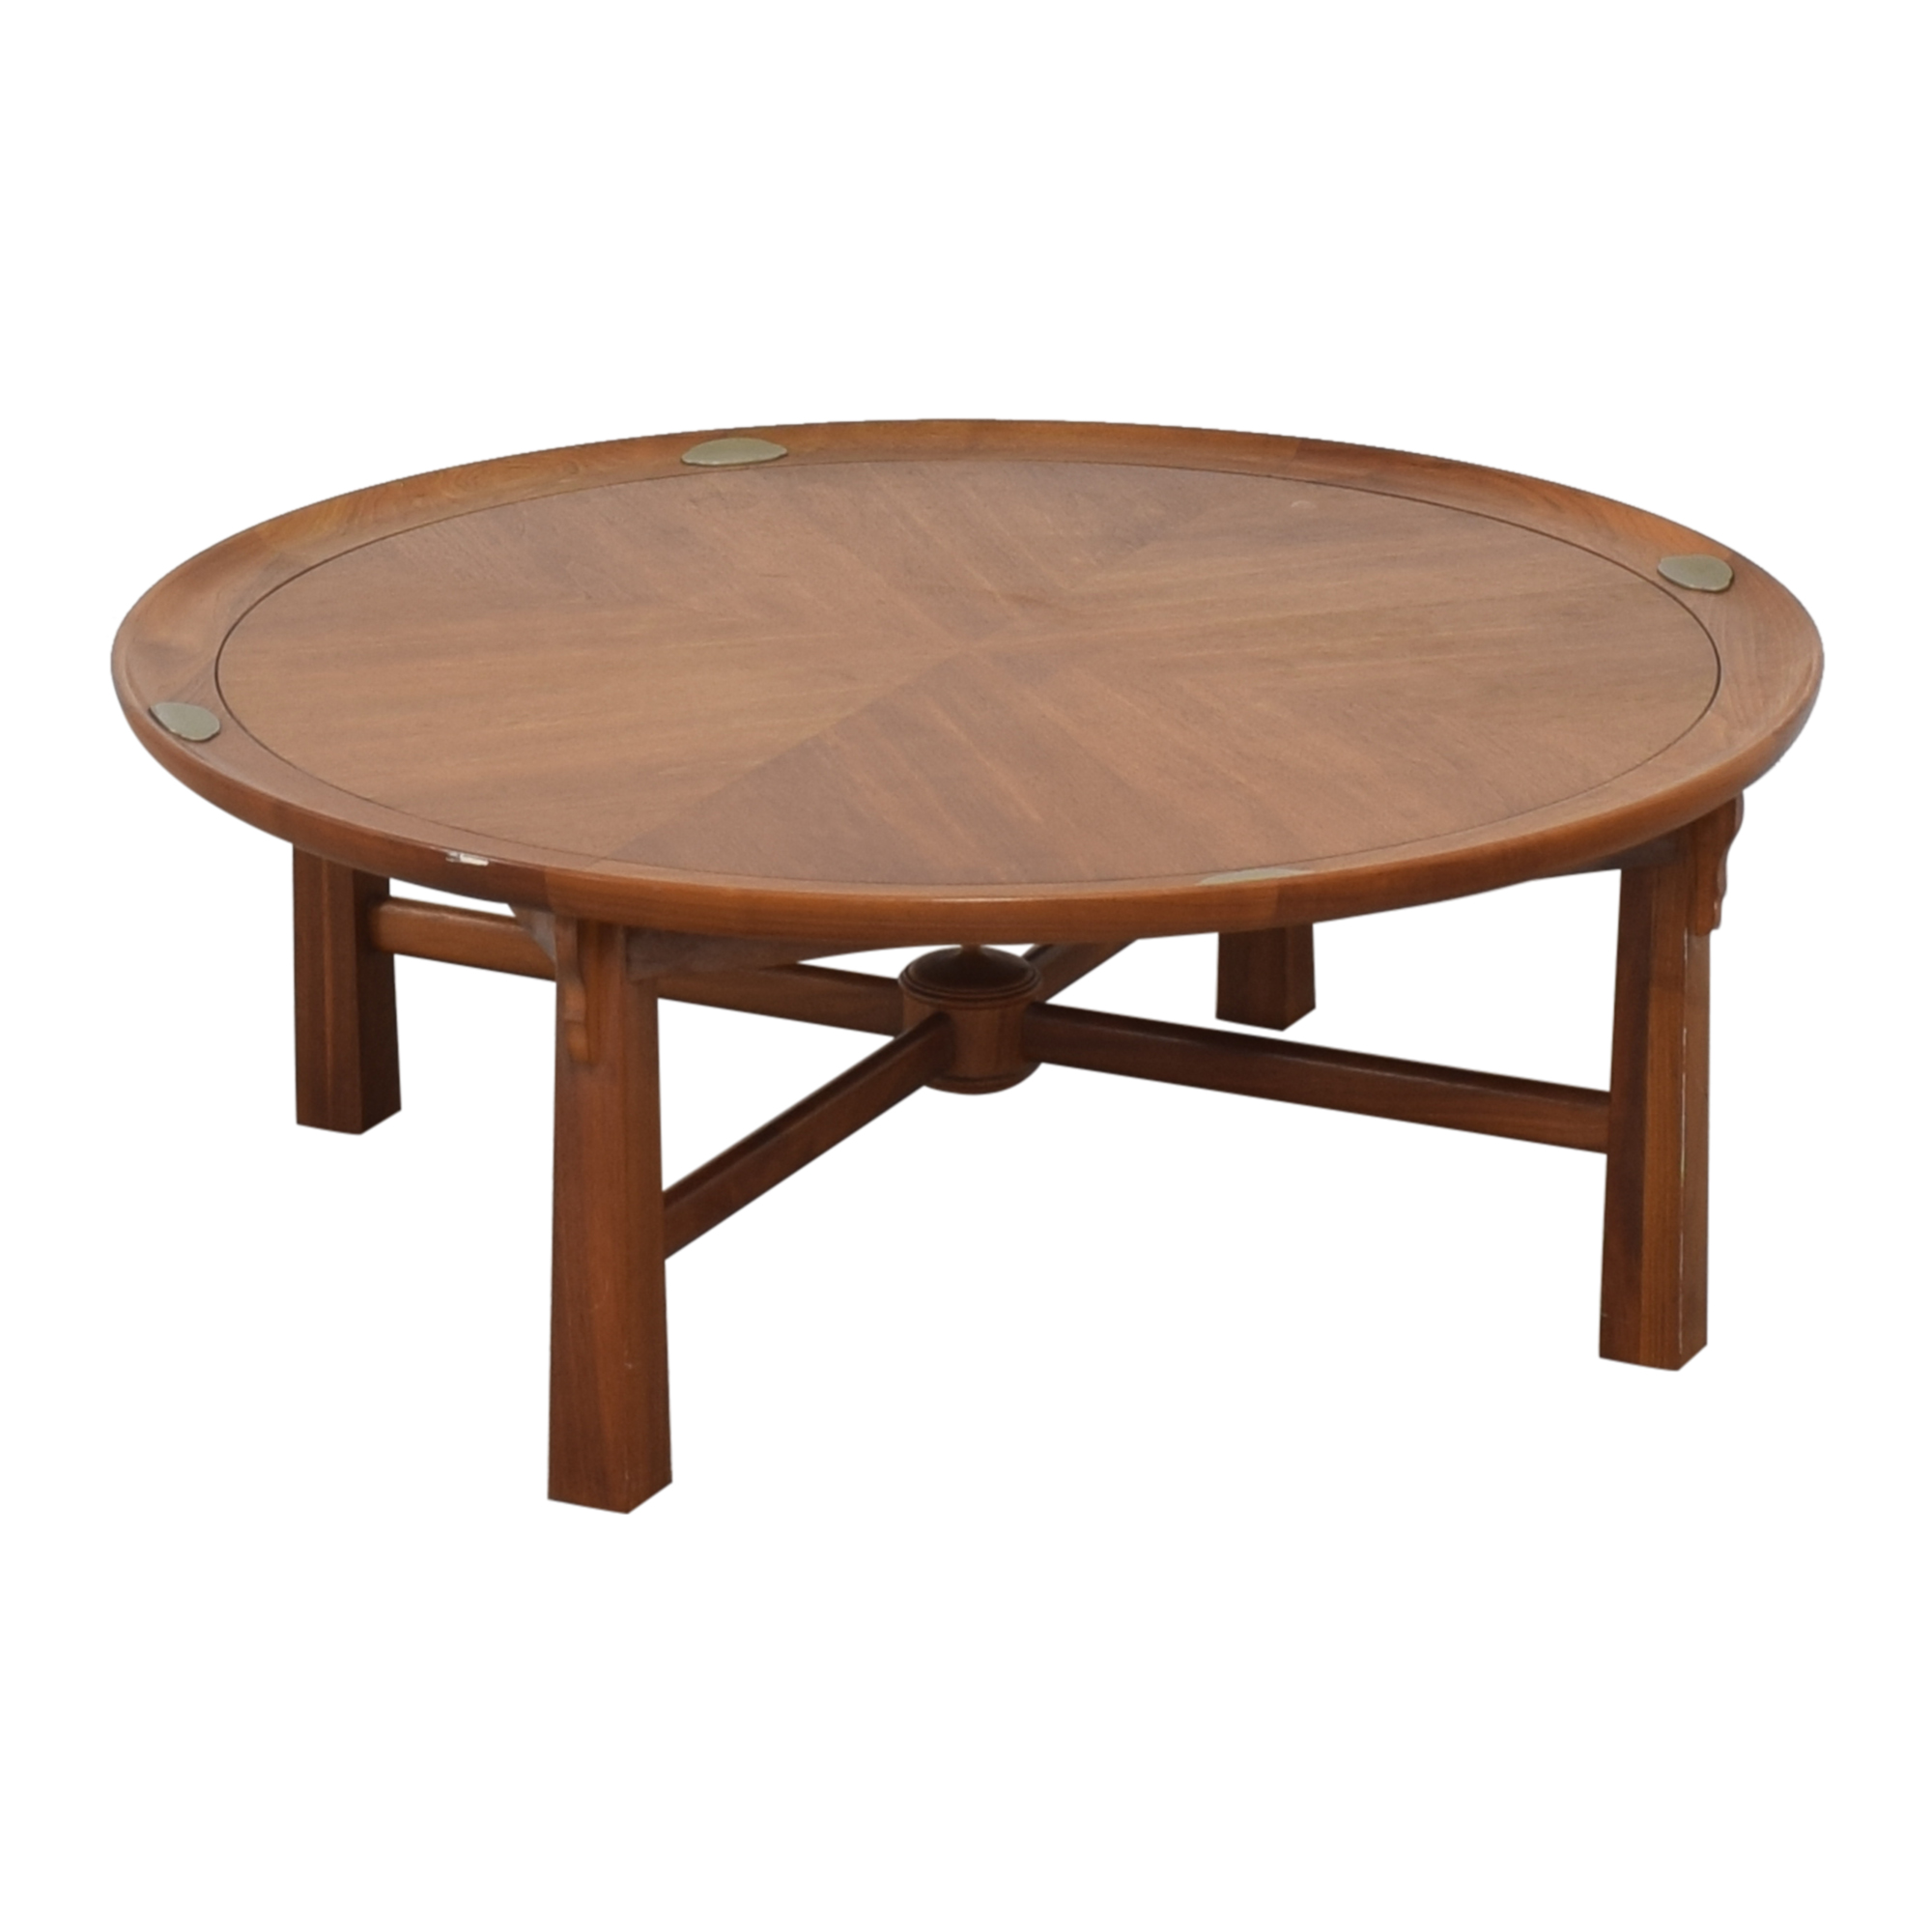 Heritage Henredon Heritage Henredon Round Coffee Table Coffee Tables